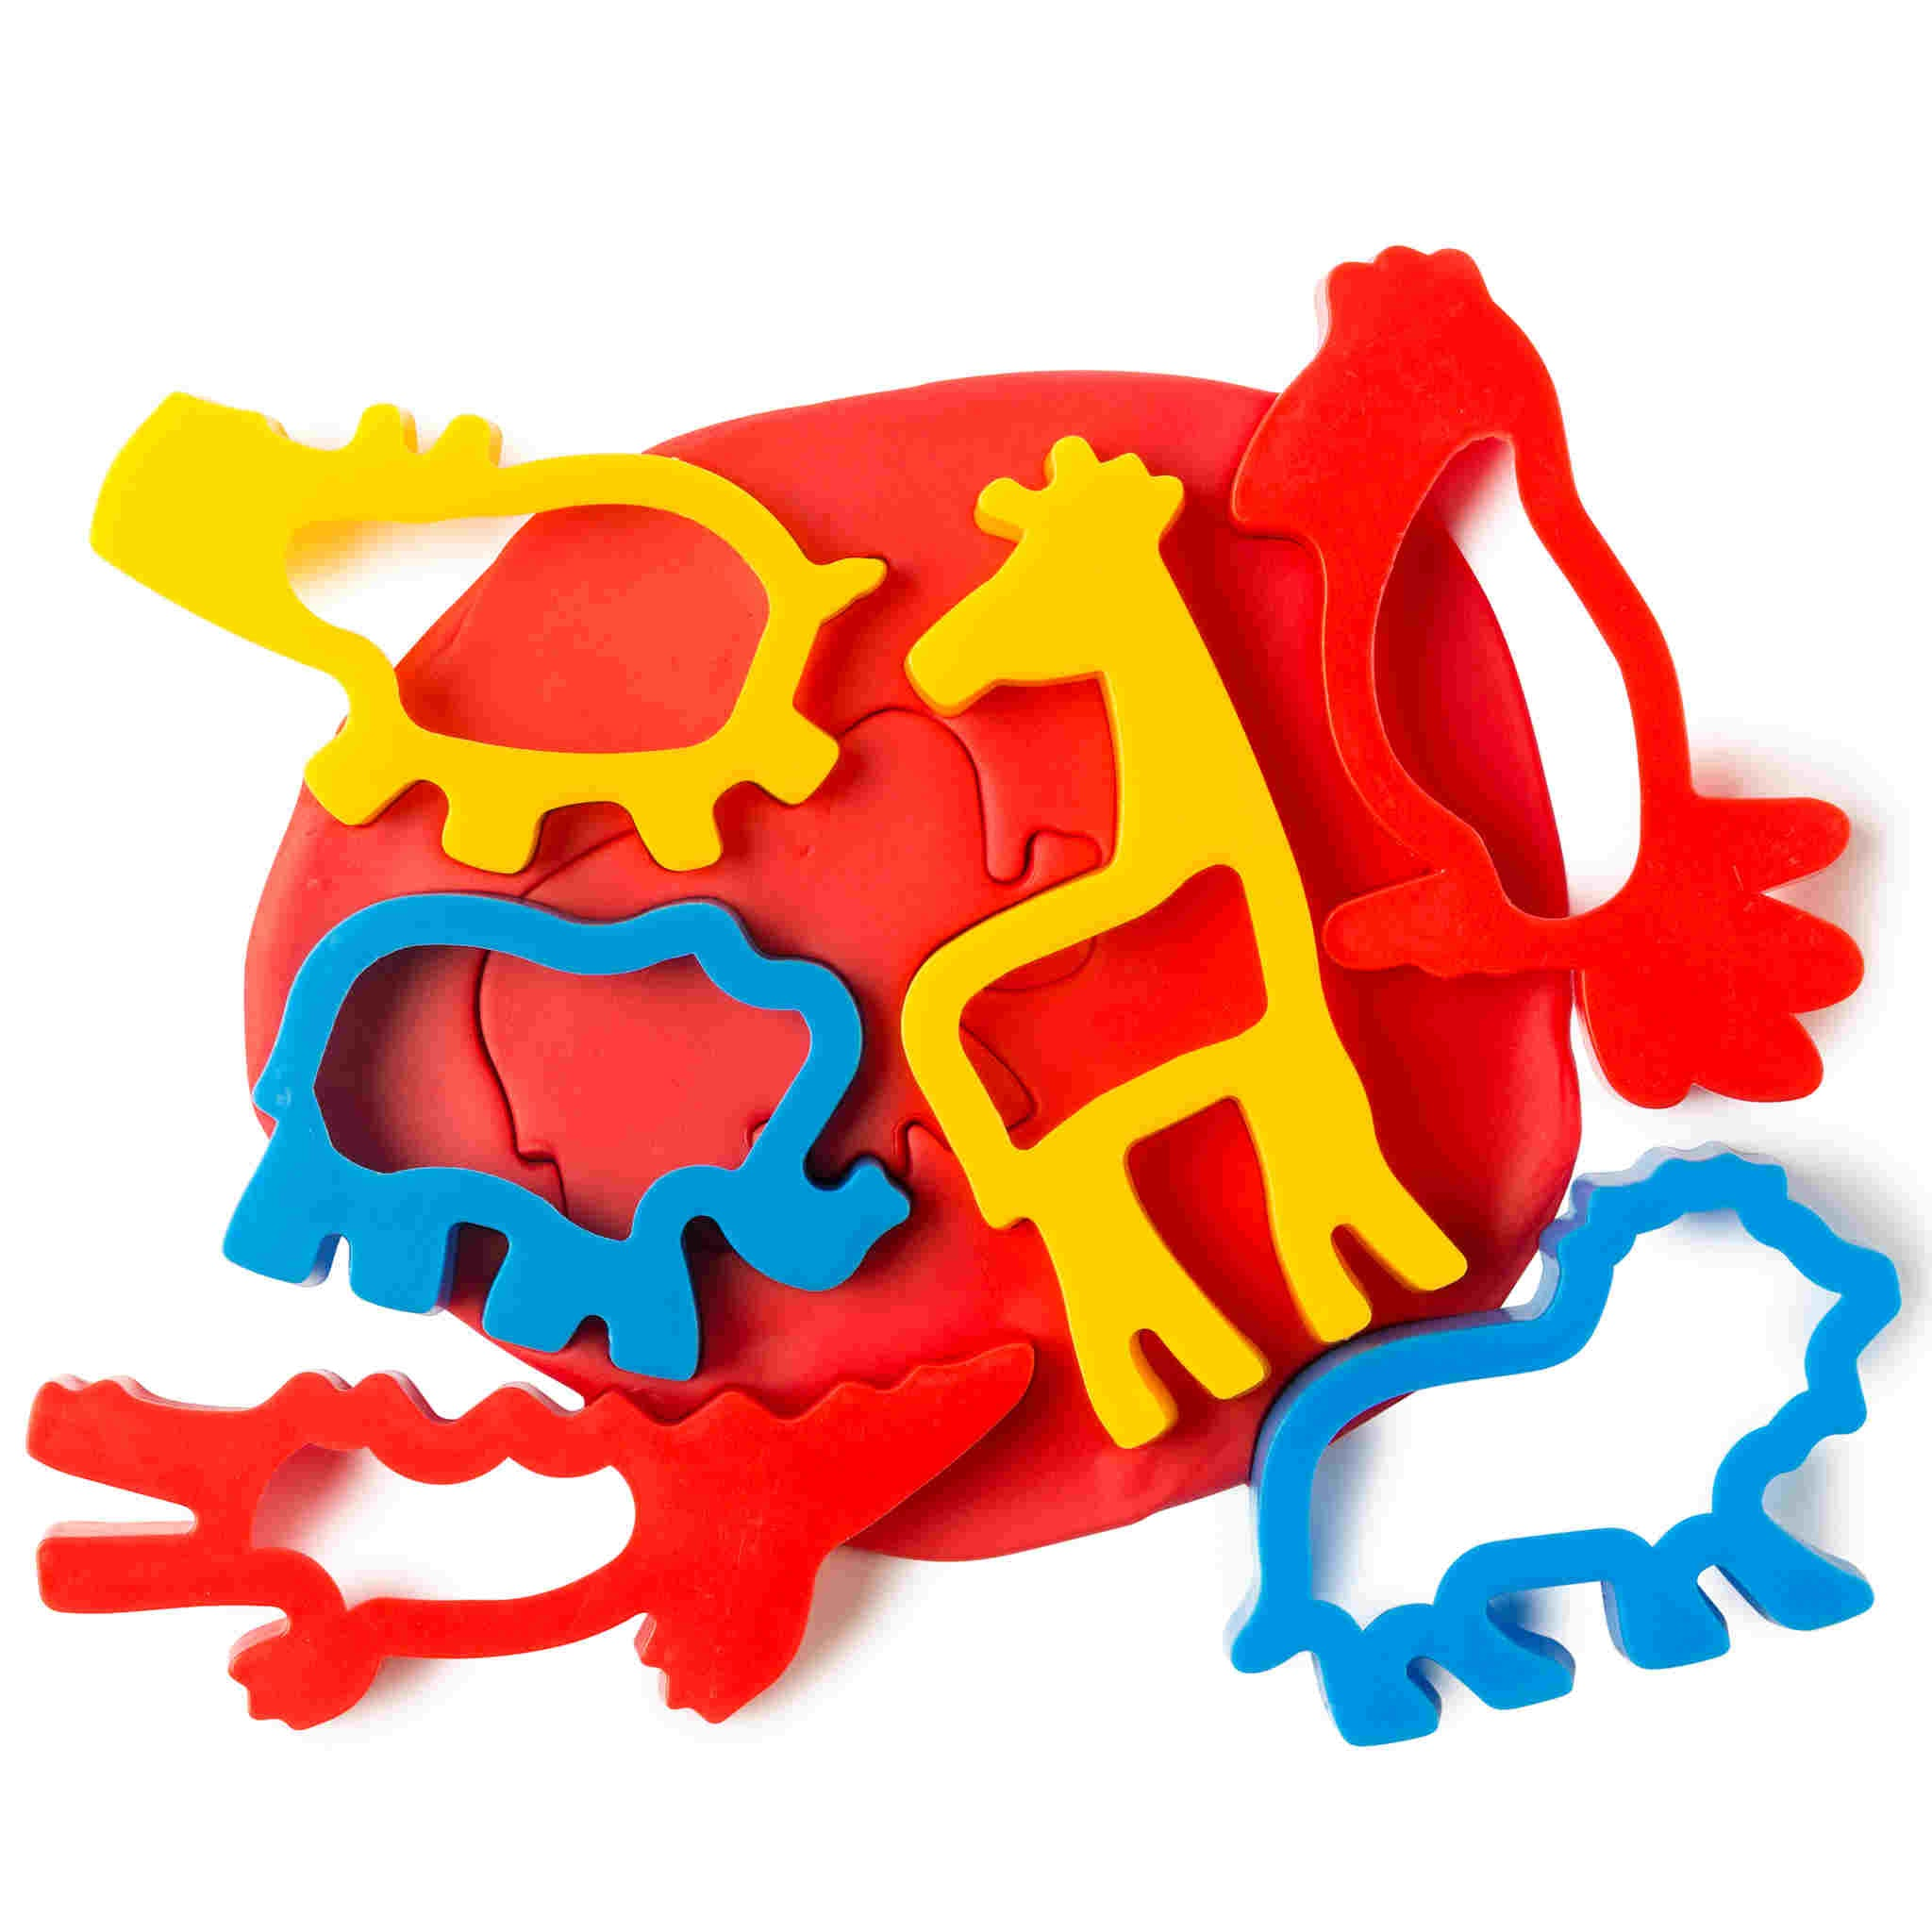 6 jungle animal shaped playdough cutters